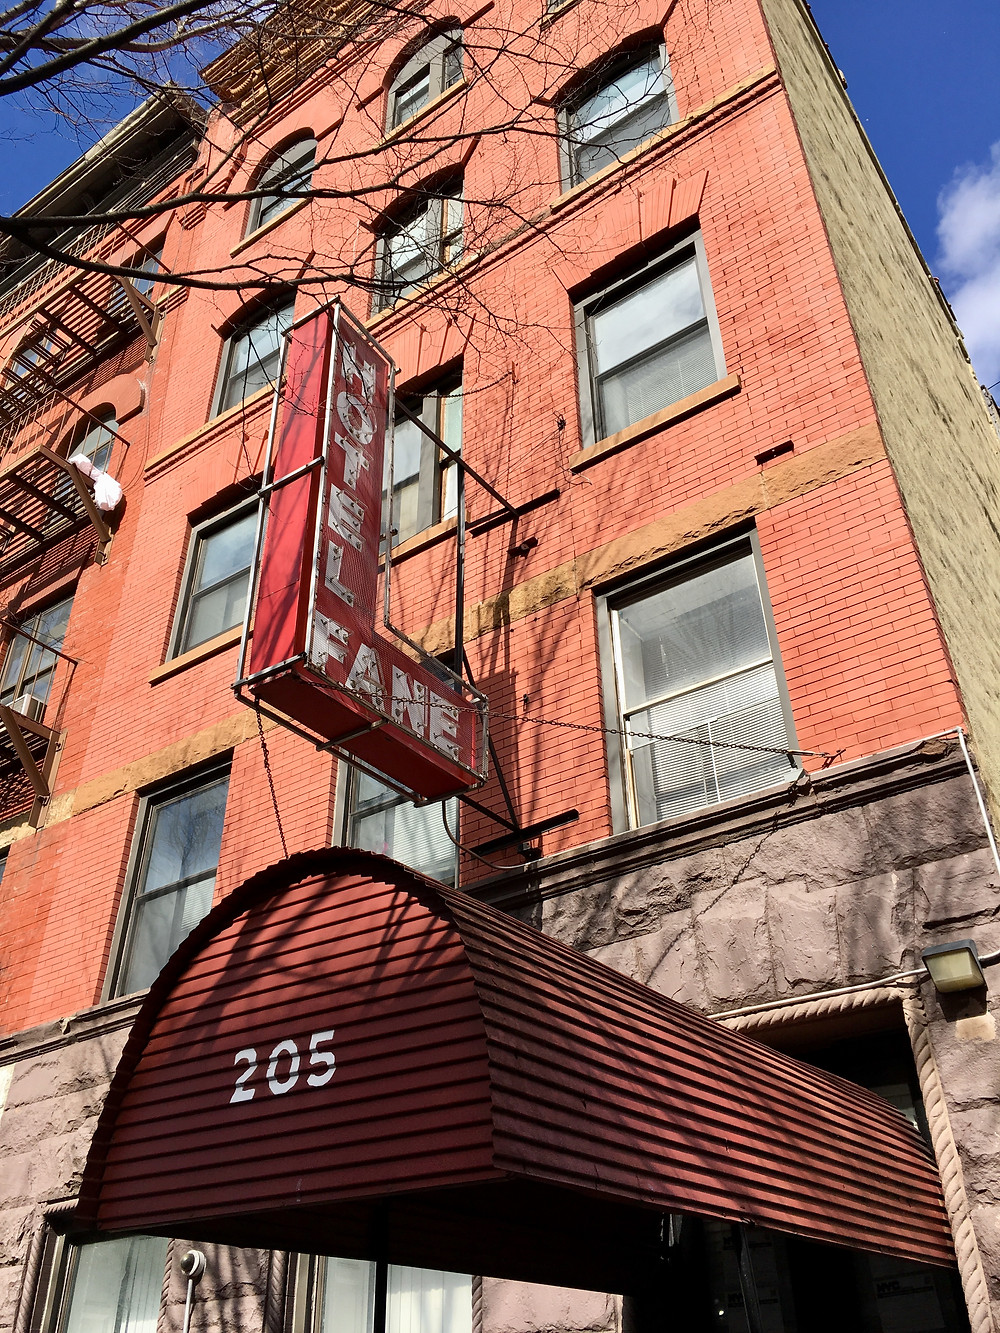 The Hotel Fane at 205 West 135th used to be listed in The Green Book